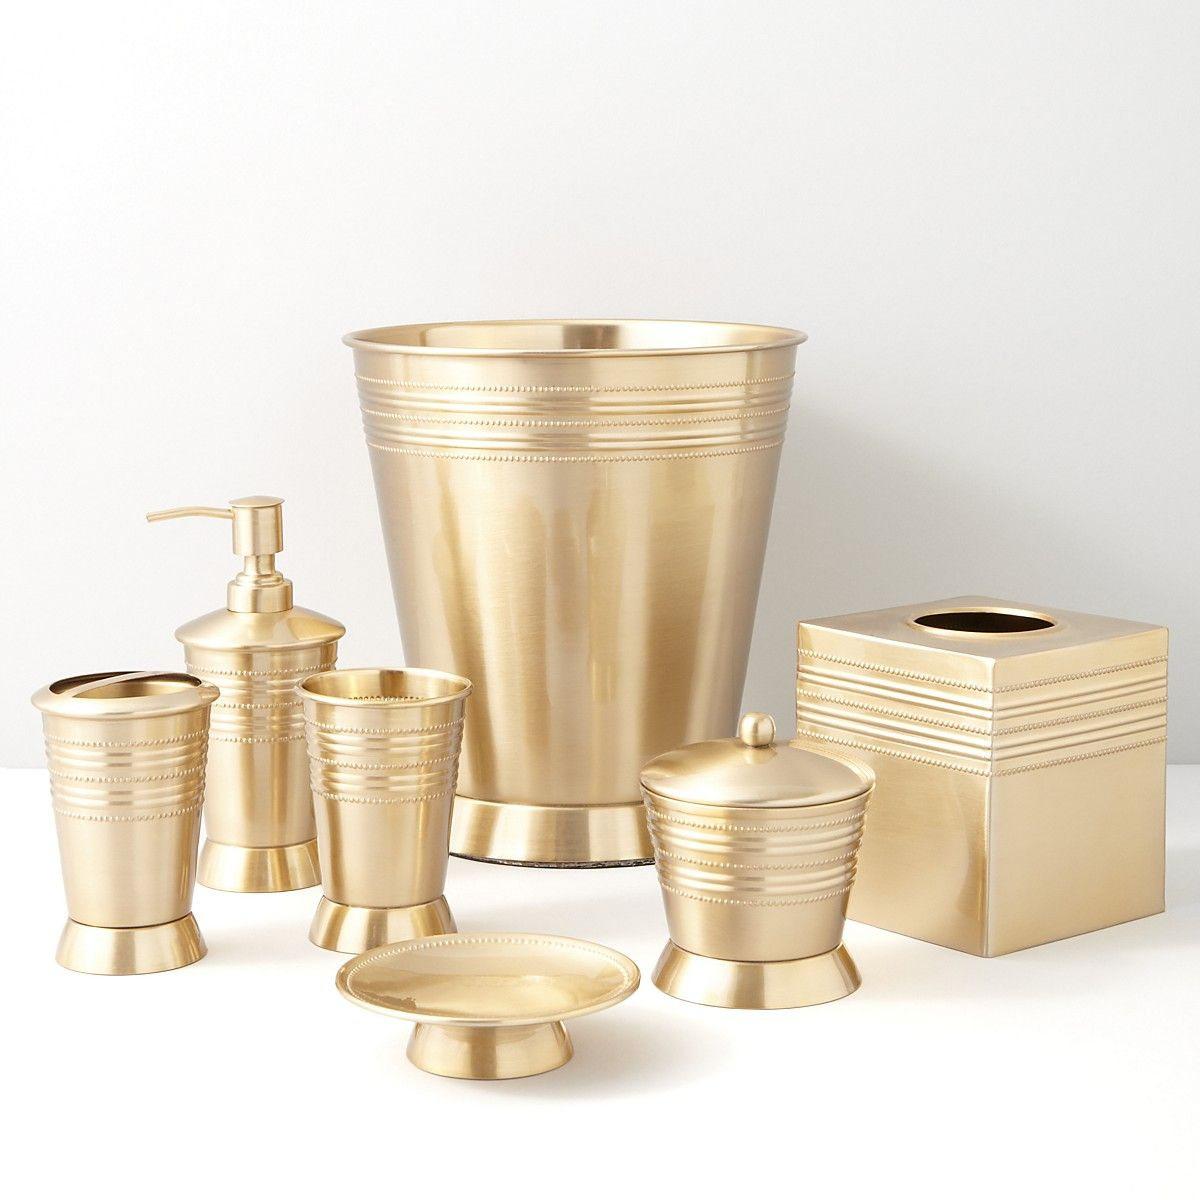 New metallic bead satin brass by paradigm trends bath for Toilet accessories